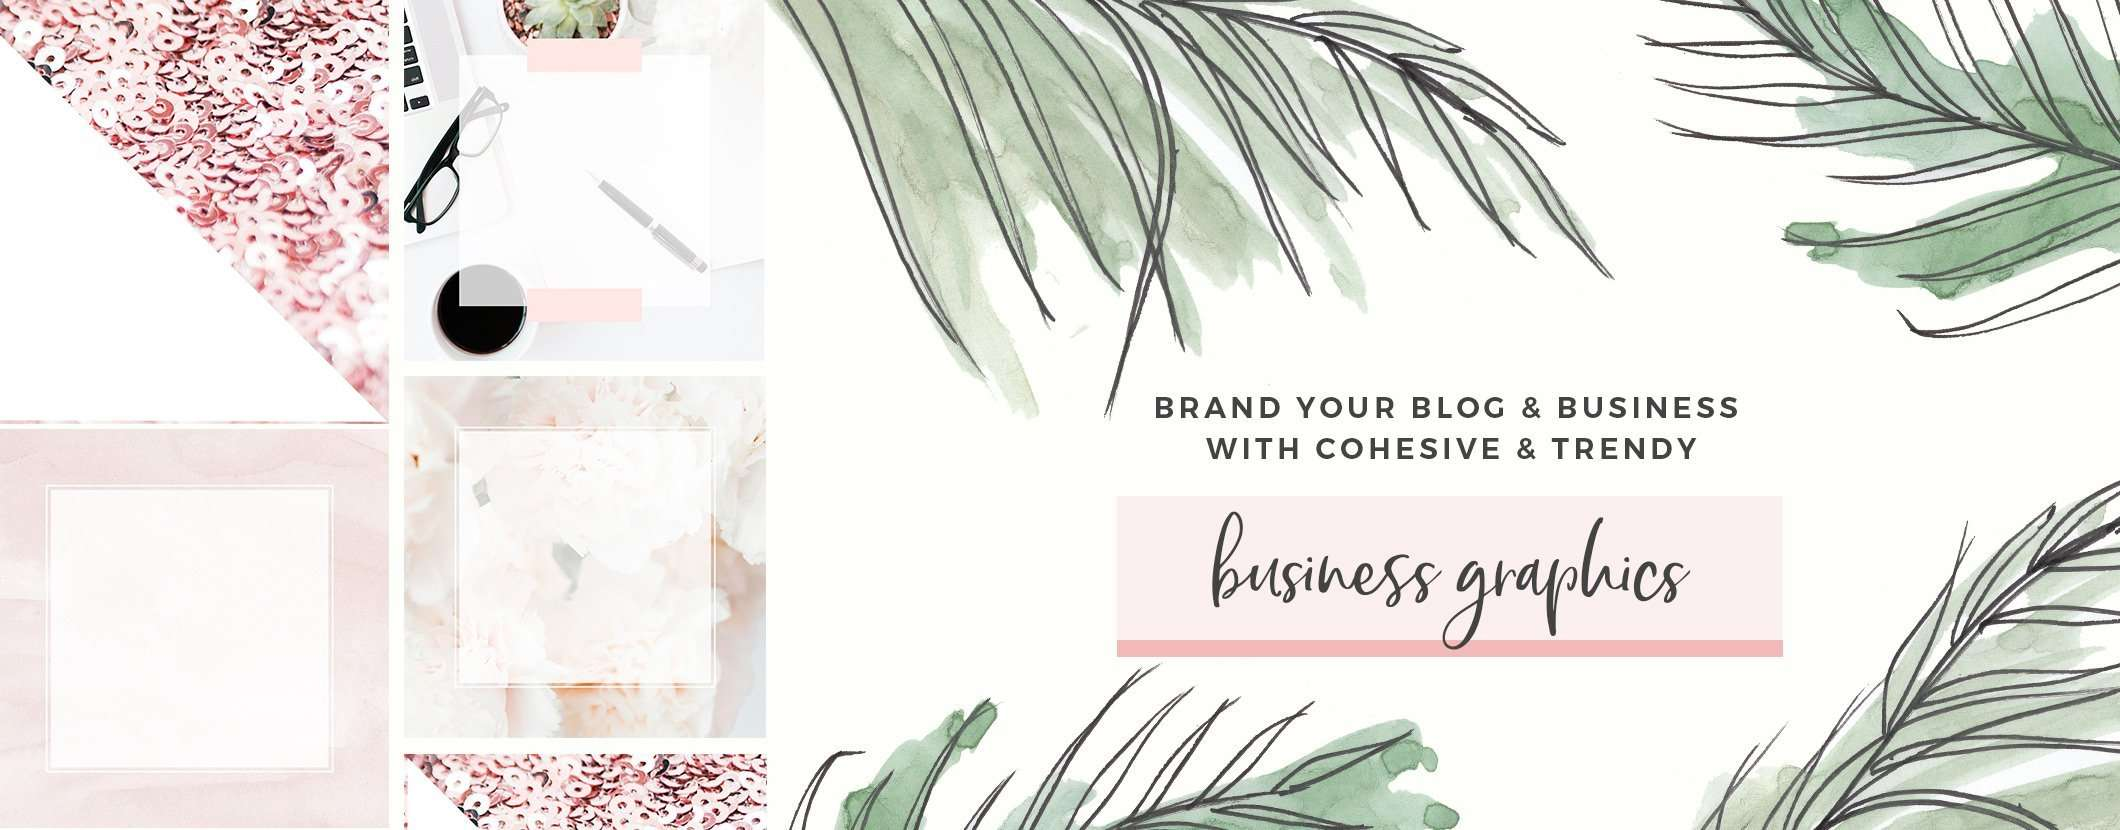 feminine blog branding kit graphics watercolor stock photos pretty girly modern high end branding affordable